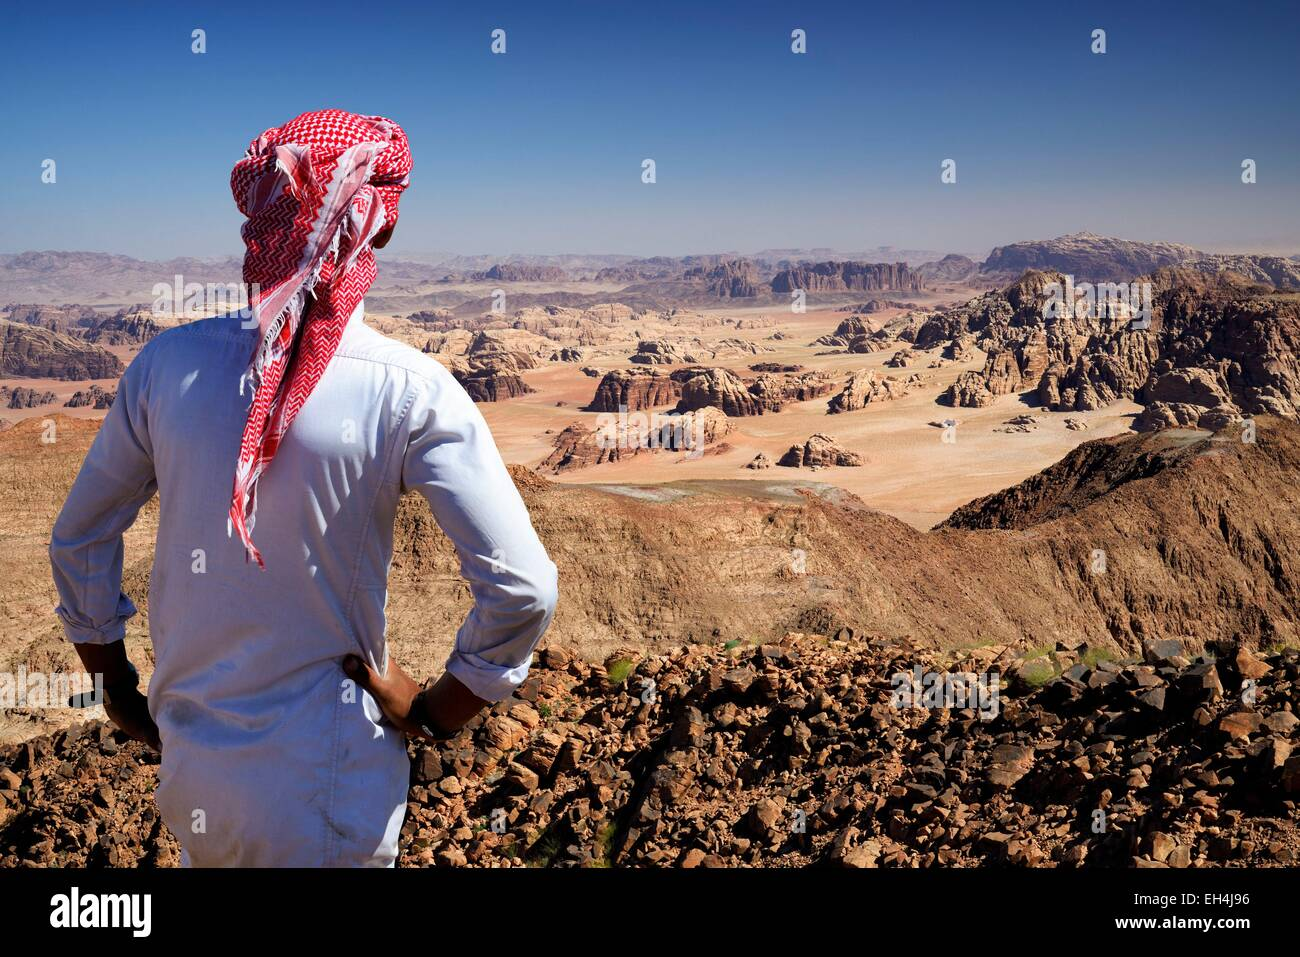 Jordan, Wadi Rum desert, border with Saudi Arabia, Bedouin and view from the summit of Jebel Umm Adaami (1832m), - Stock Image